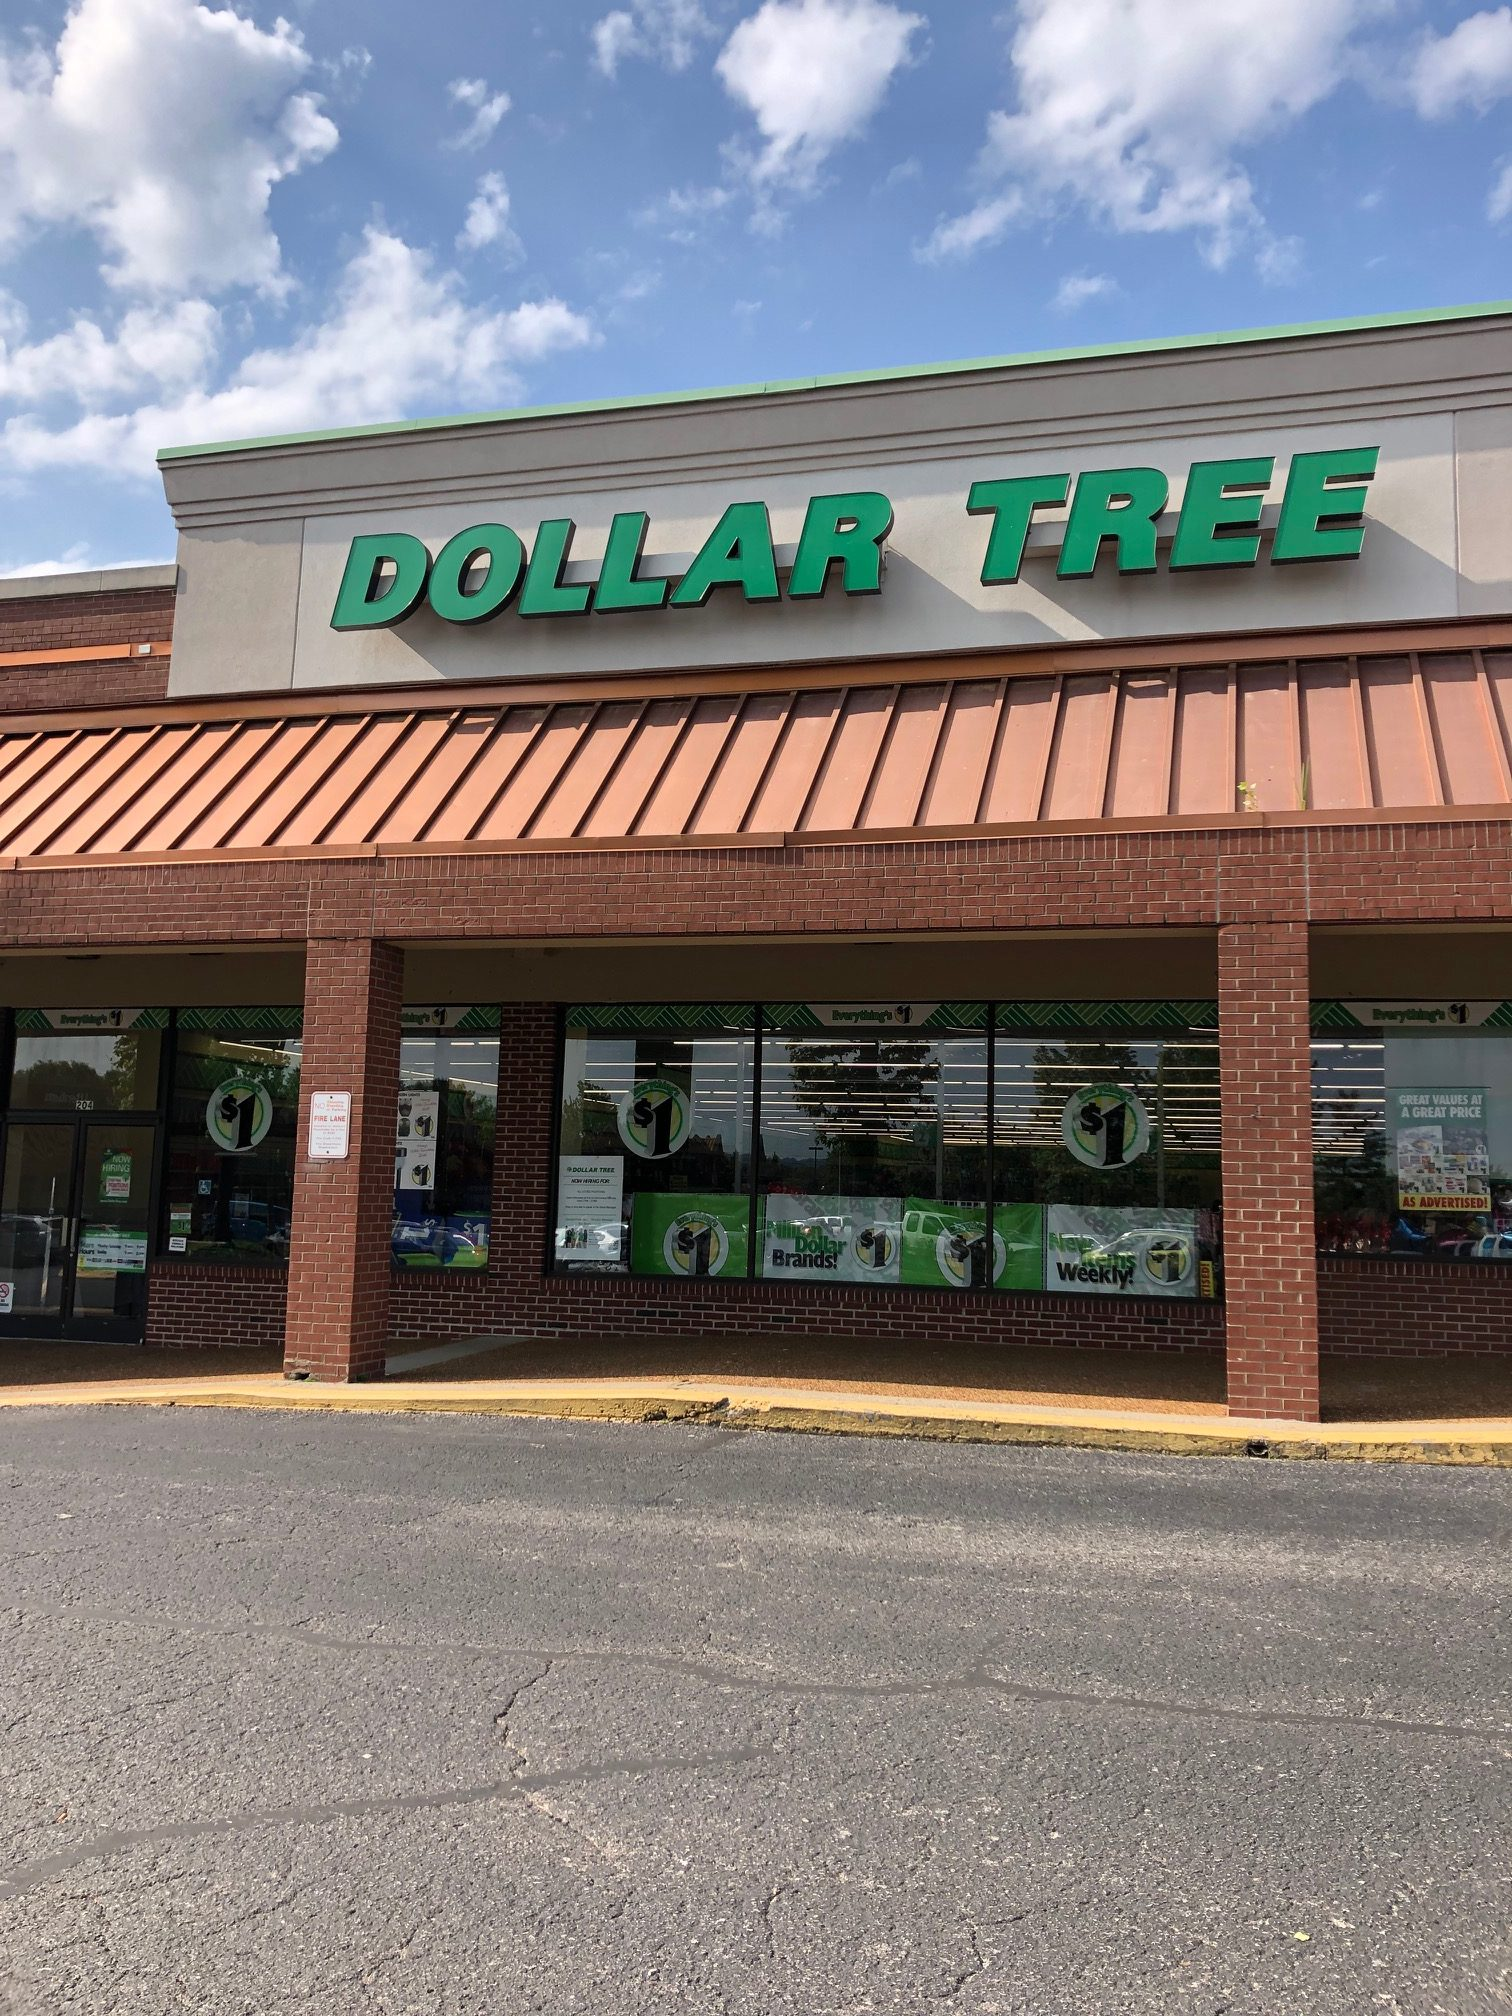 image about Printable Dollar Tree Coupons identify Greenback Tree: Unusual 10% Off Coupon for July 14th! Dollars